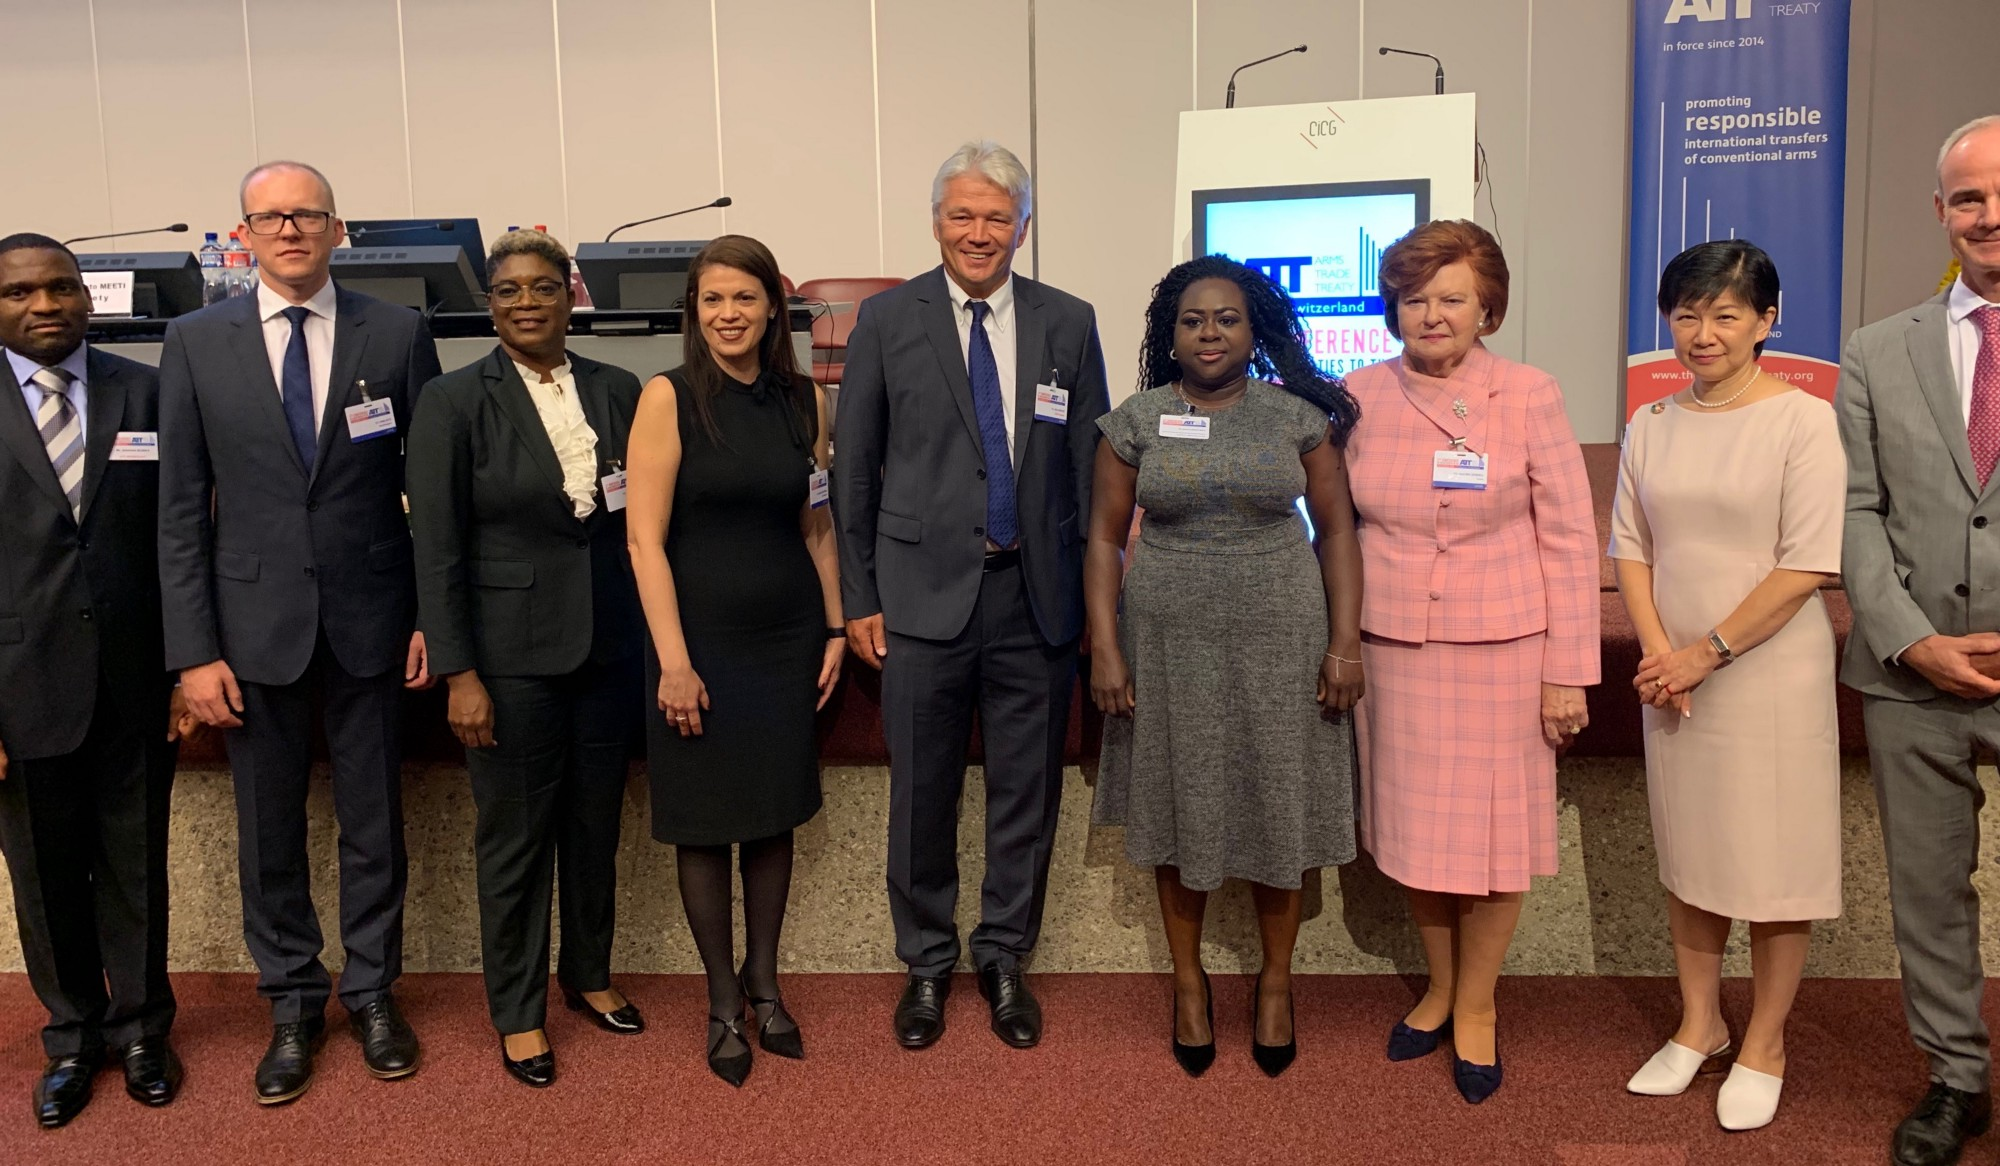 High Level Panel on Gender at the 5th Conference of States Parties to the Arms Trade Treaty. Credit: Mission of Latvia